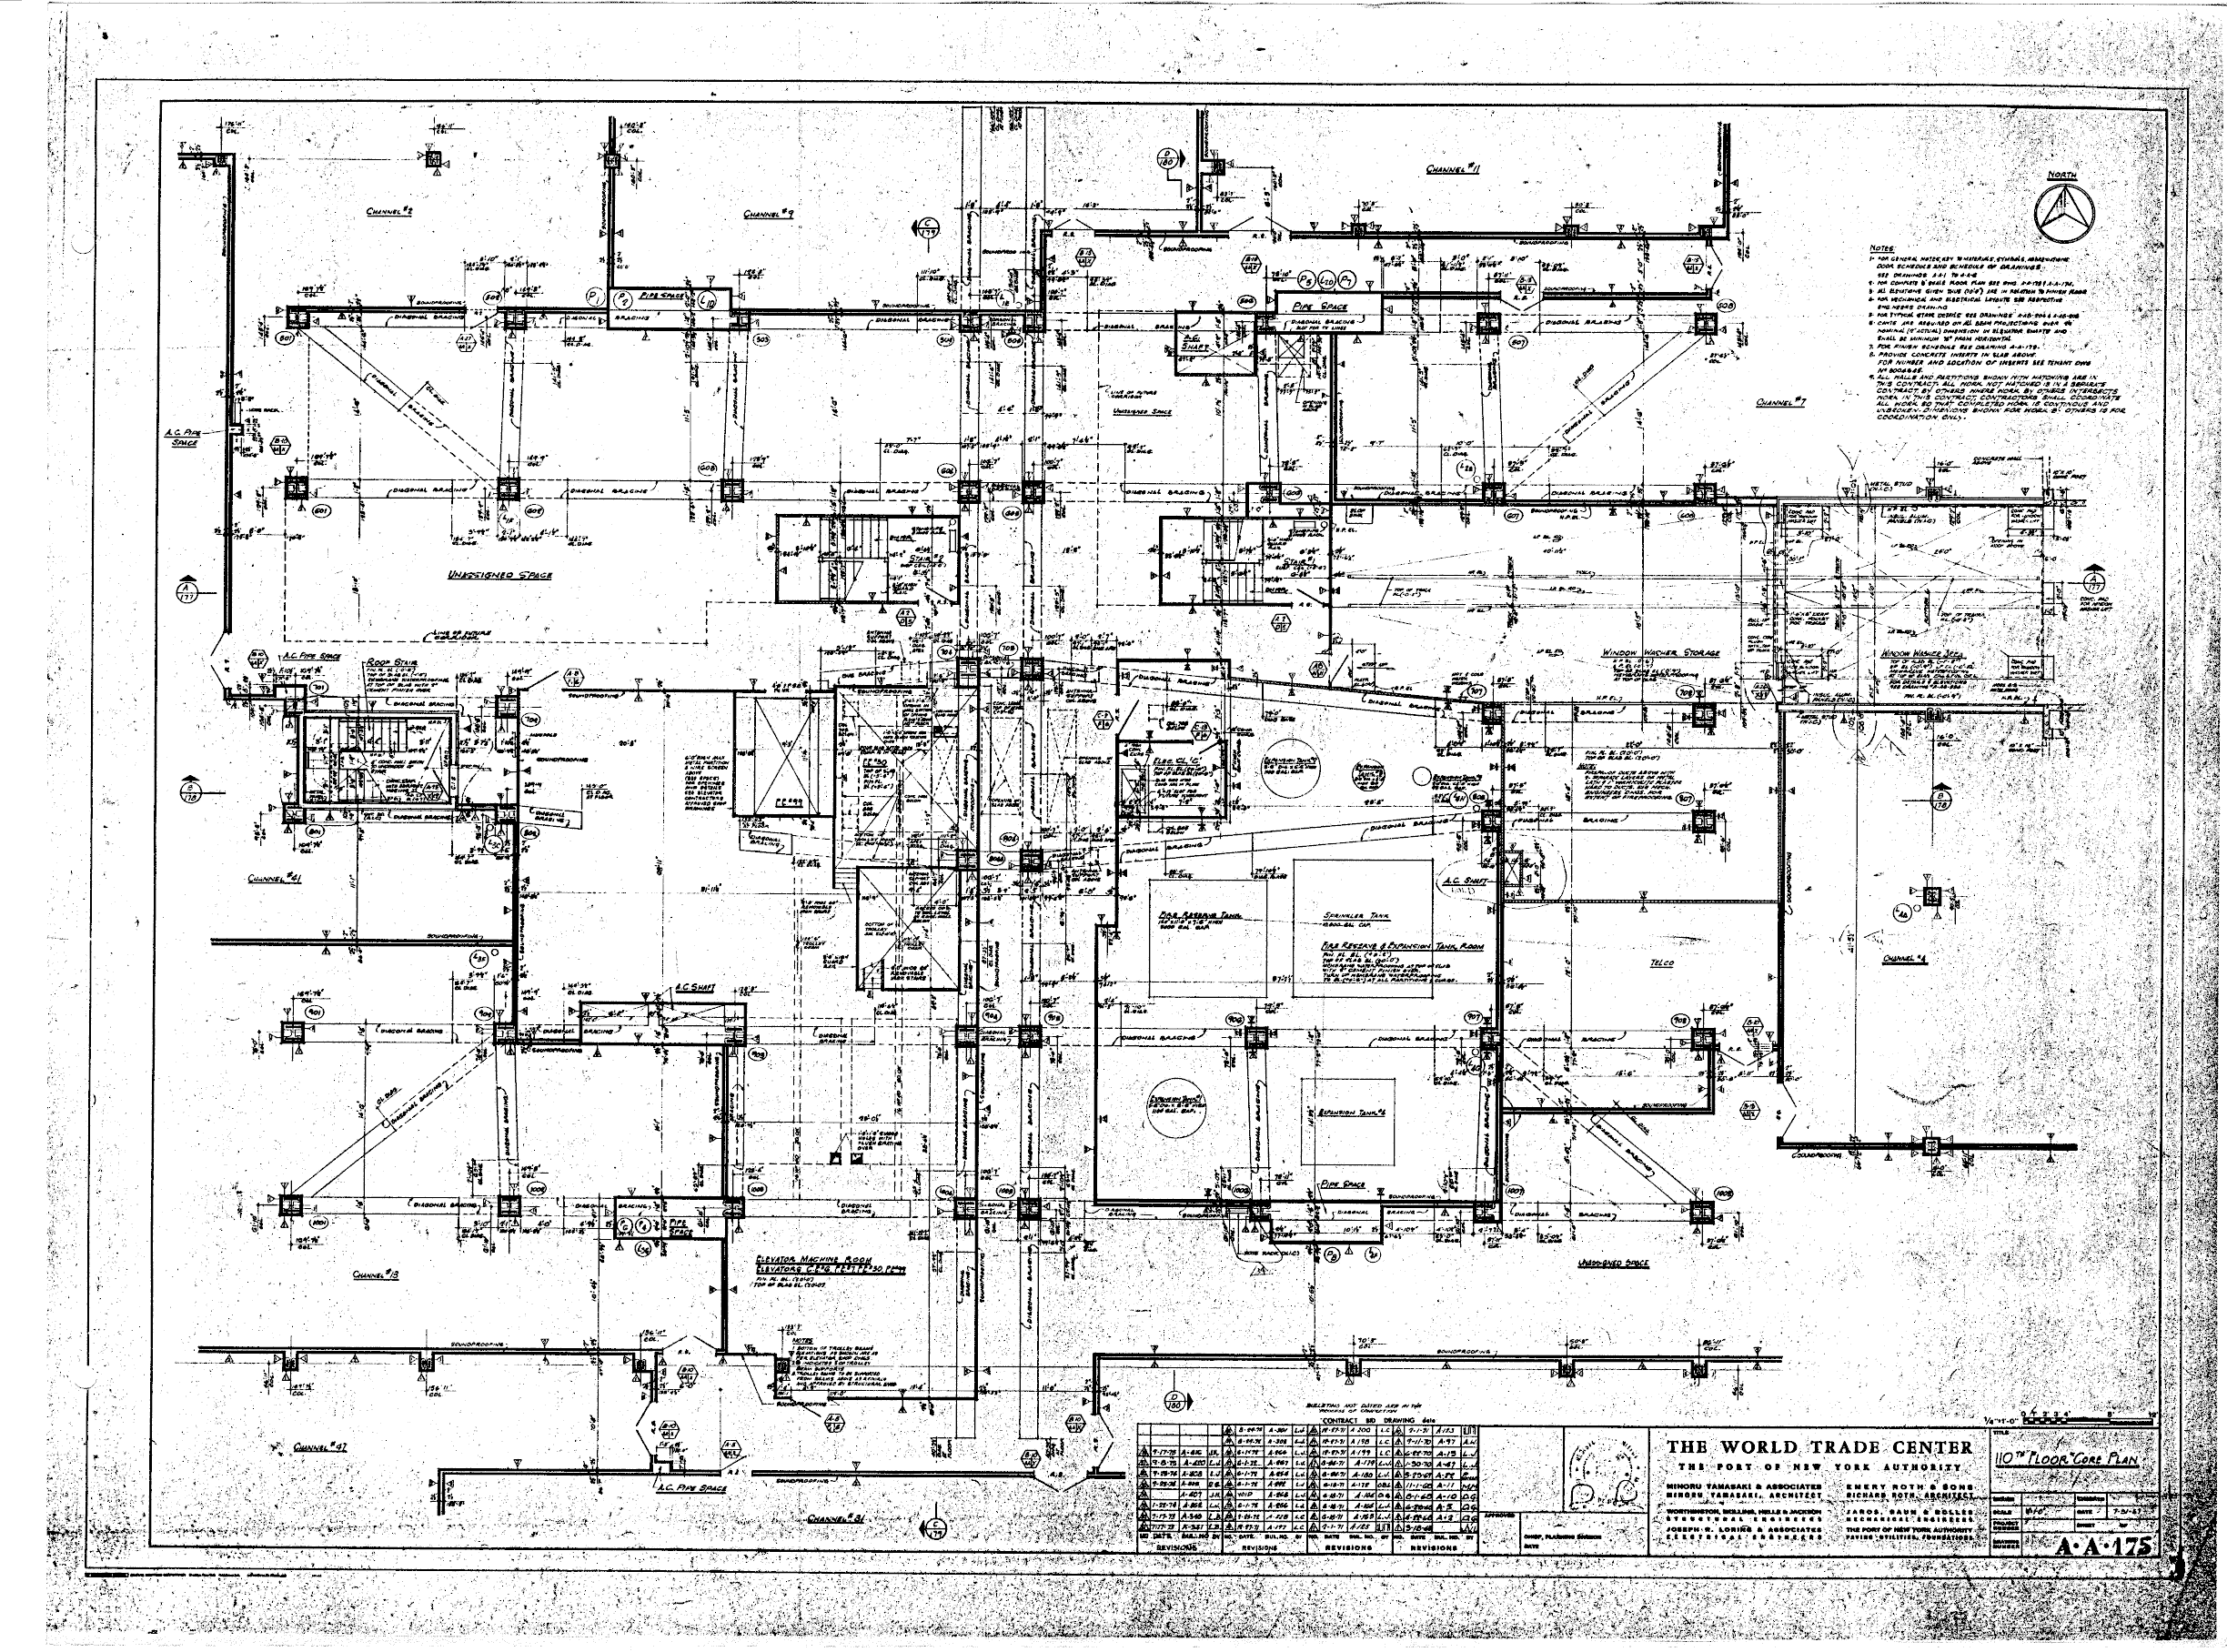 110th floor core plan 612x454 1224x908 2448x1816 4896x3632 tower section section a